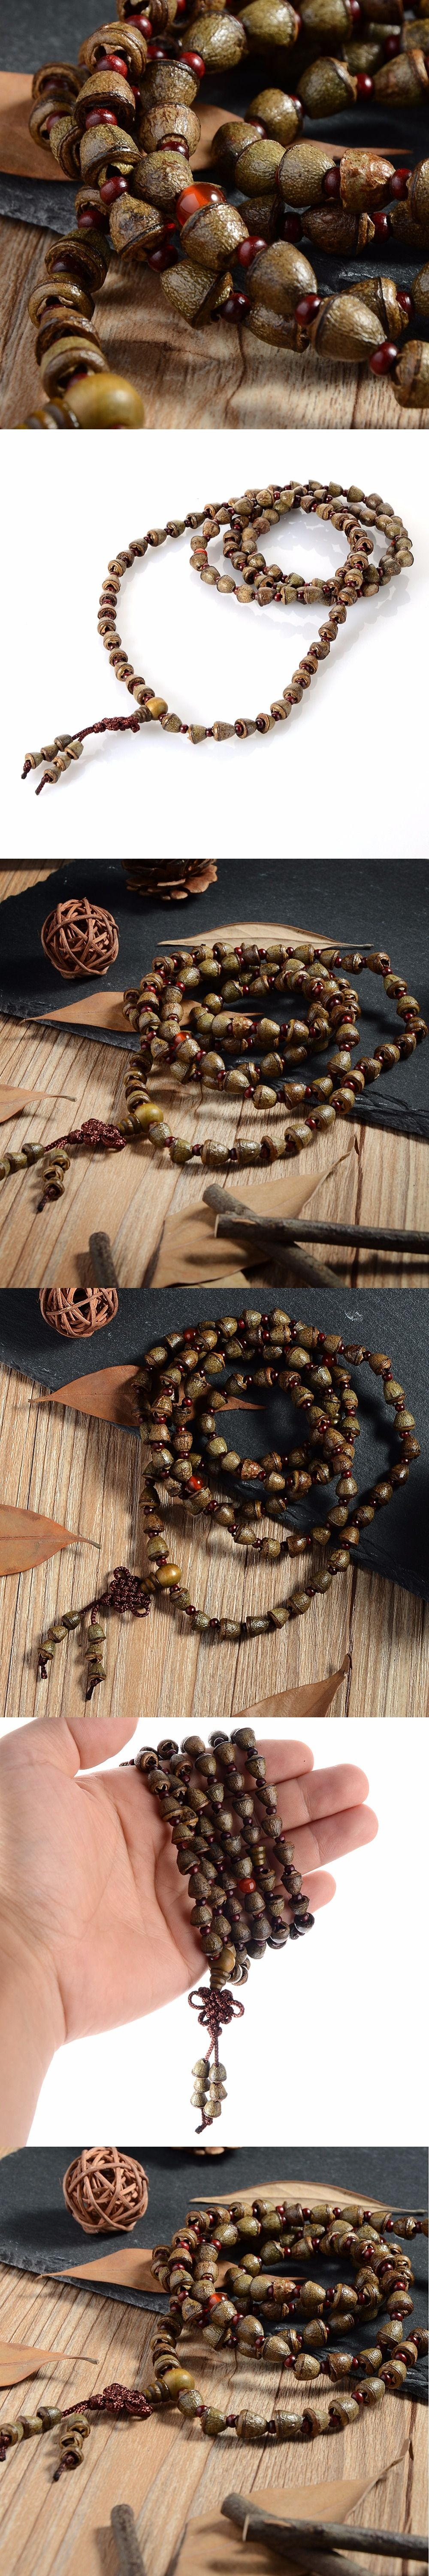 light seed serenity singing tibet bowls bodhi dragon img product brown bracelet vein red